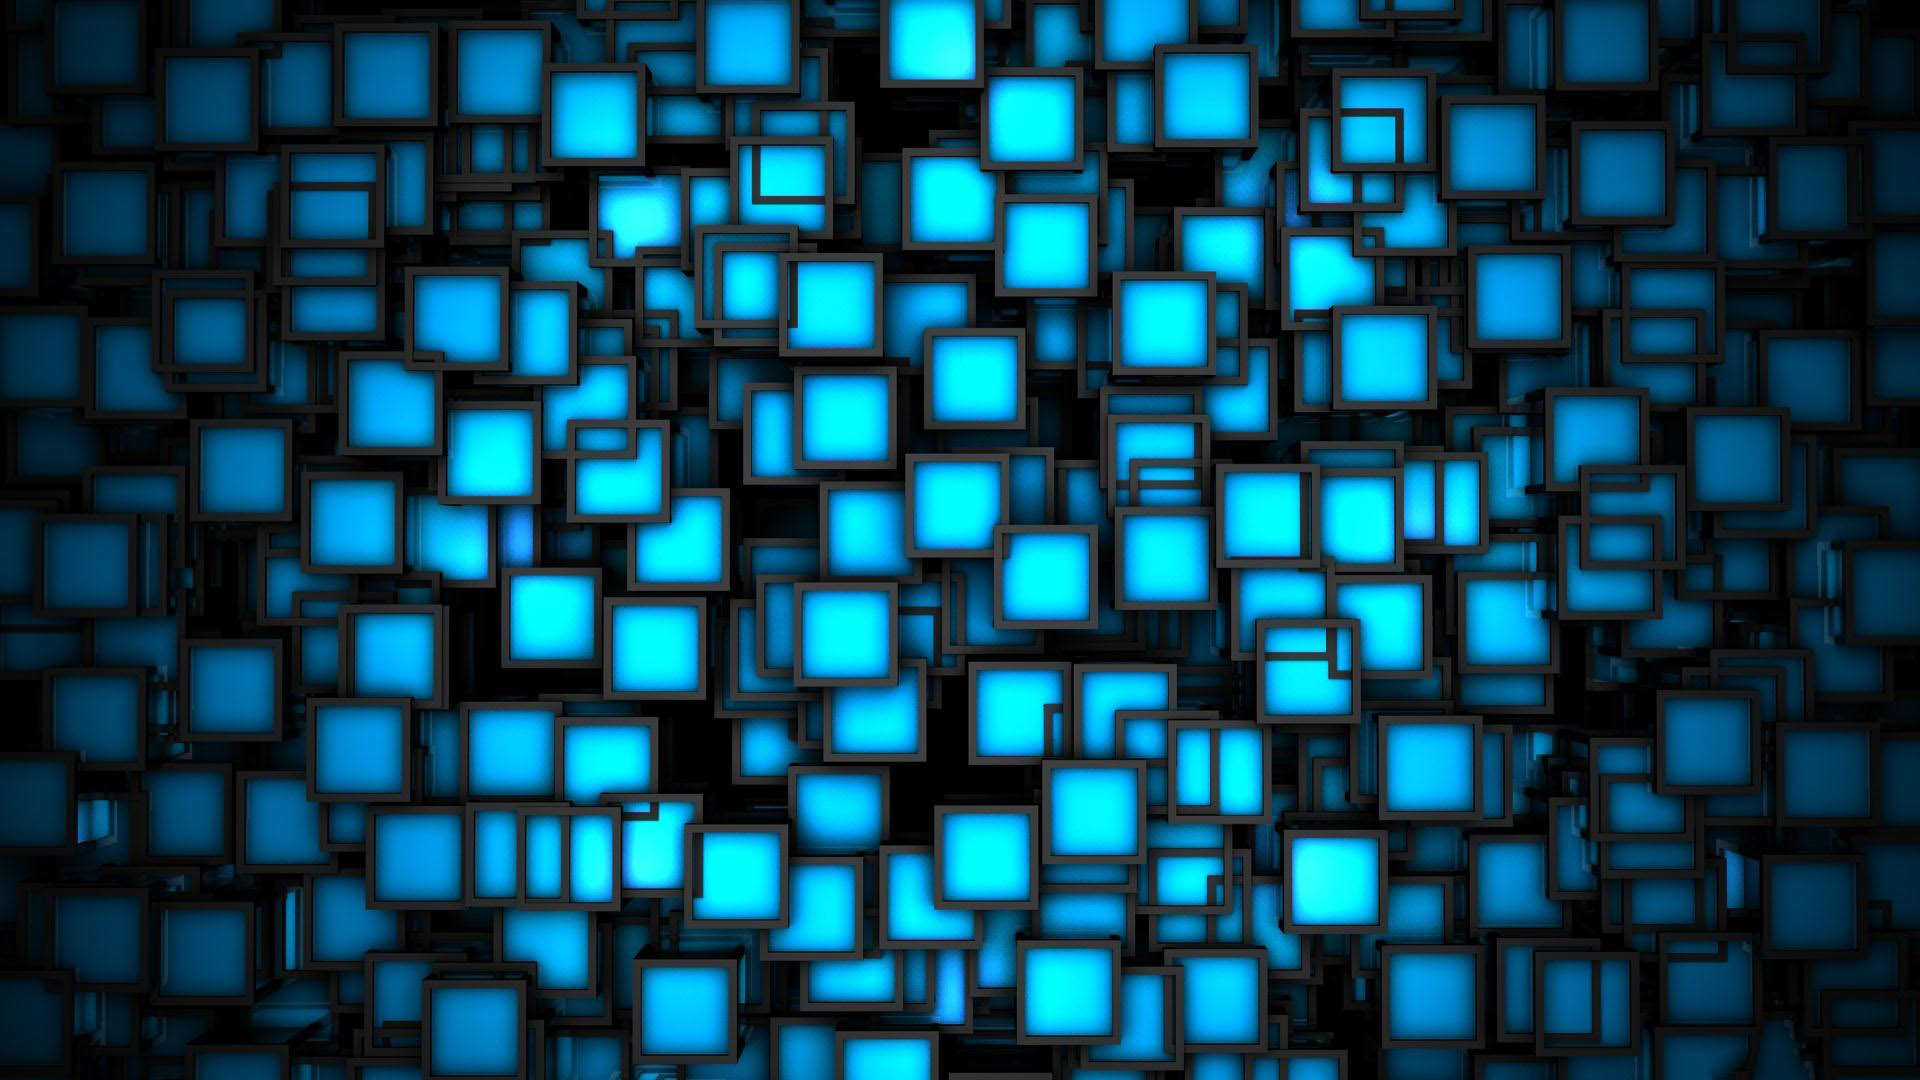 abstract-blue-5